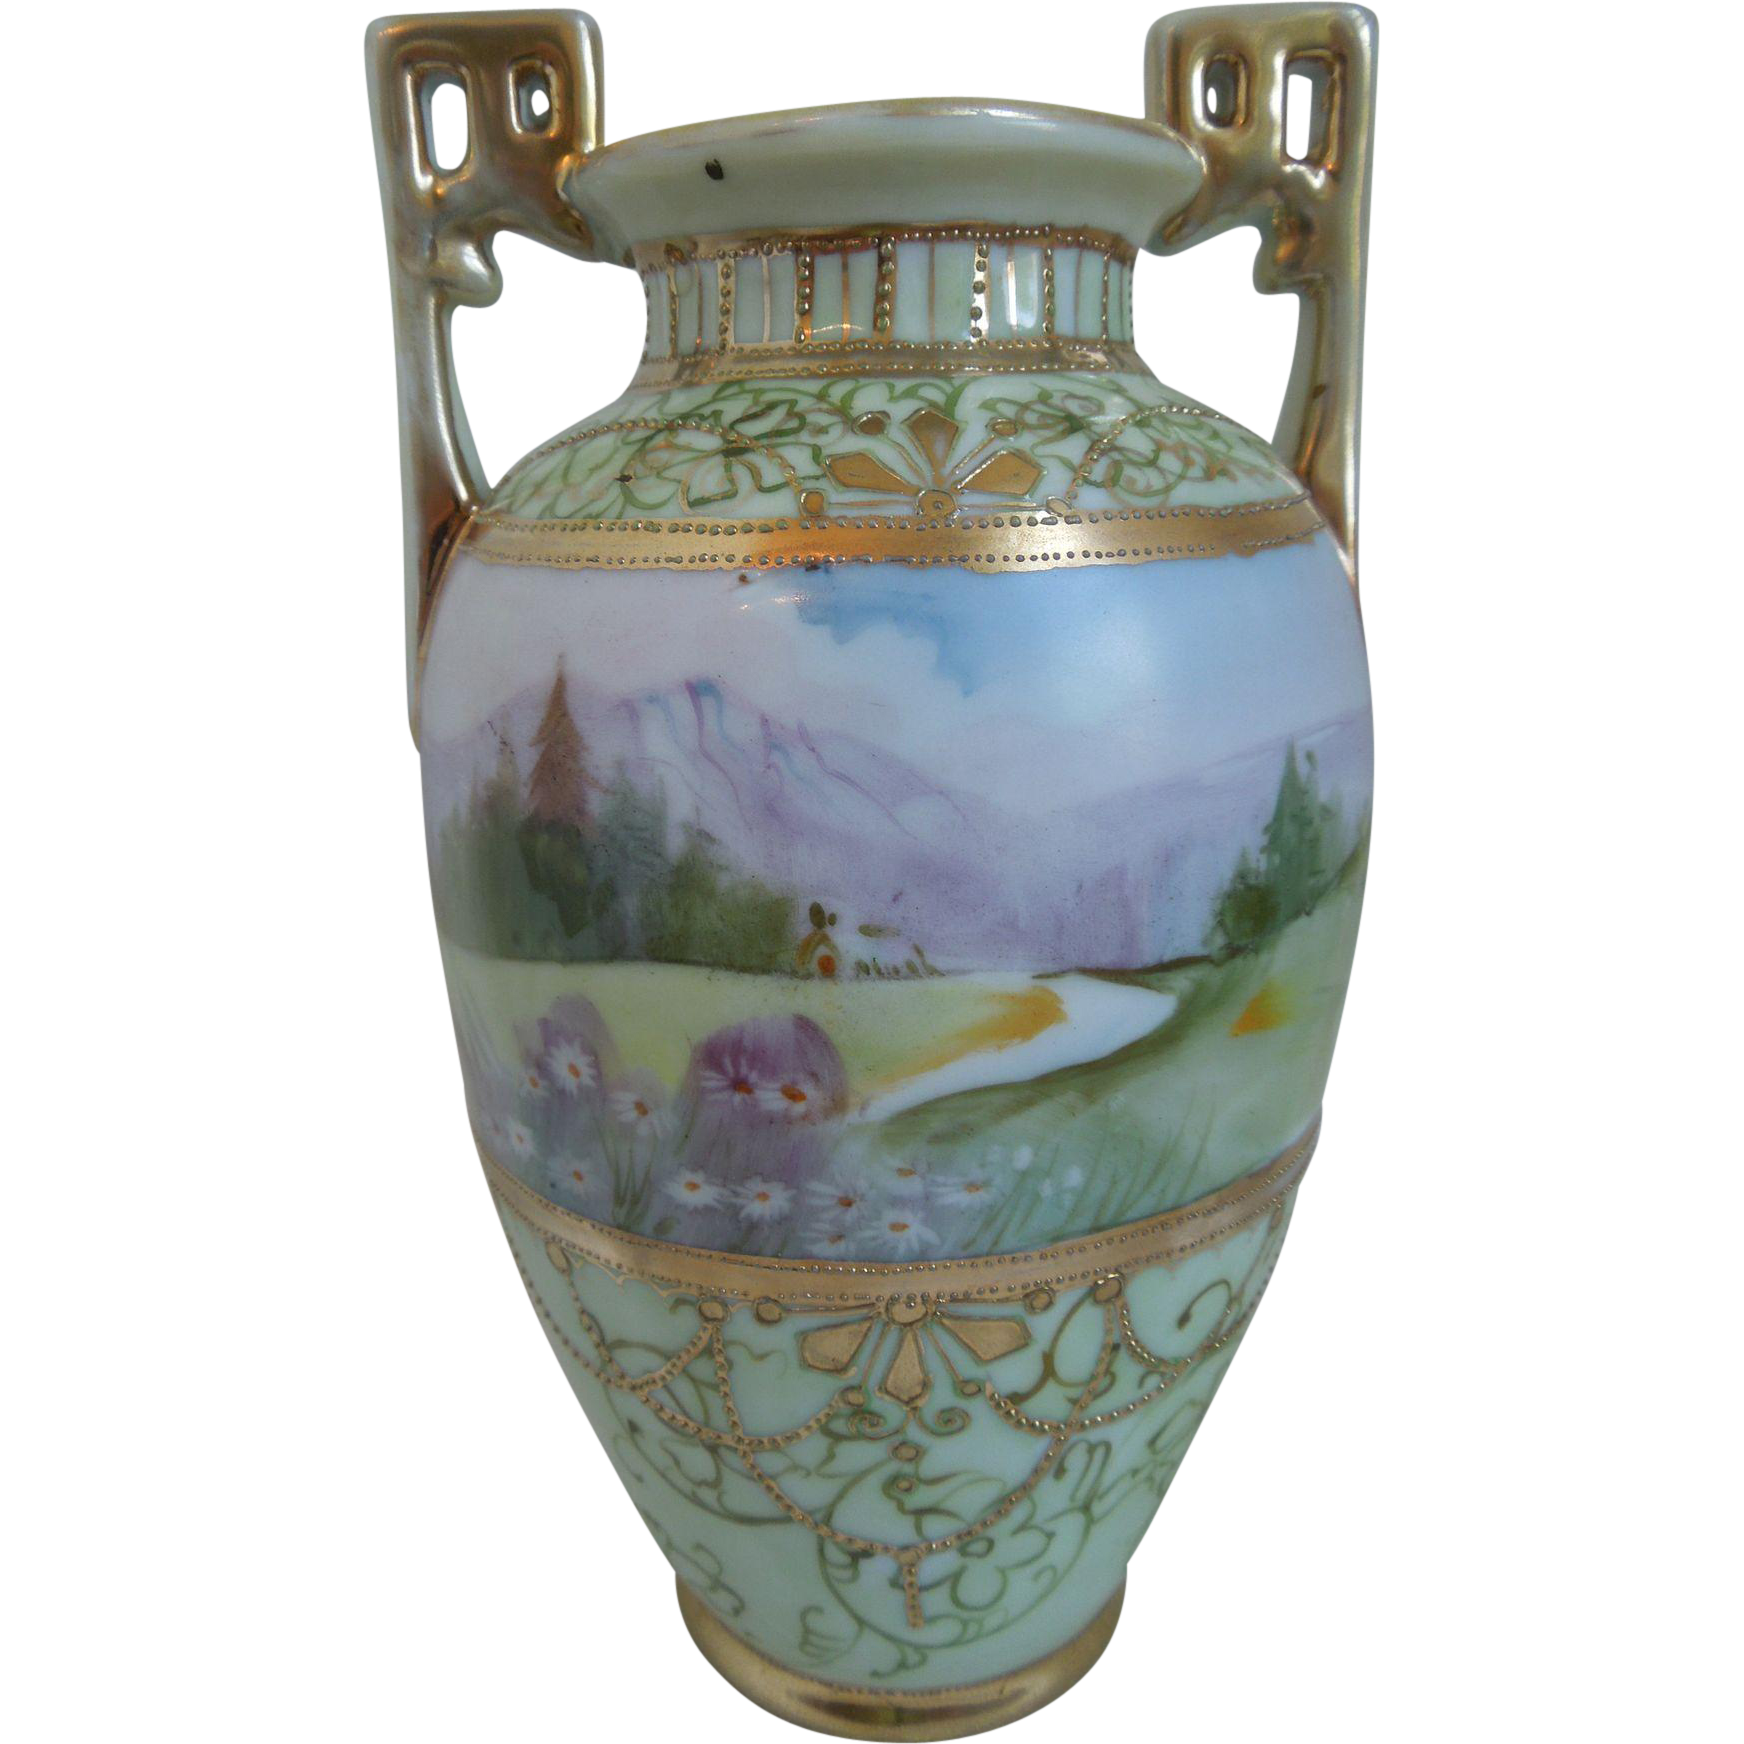 Nippon hand painted porcelain vase with landscape scene gilt work nippon hand painted porcelain vase with landscape scene gilt work merriman antique and design ruby lane reviewsmspy